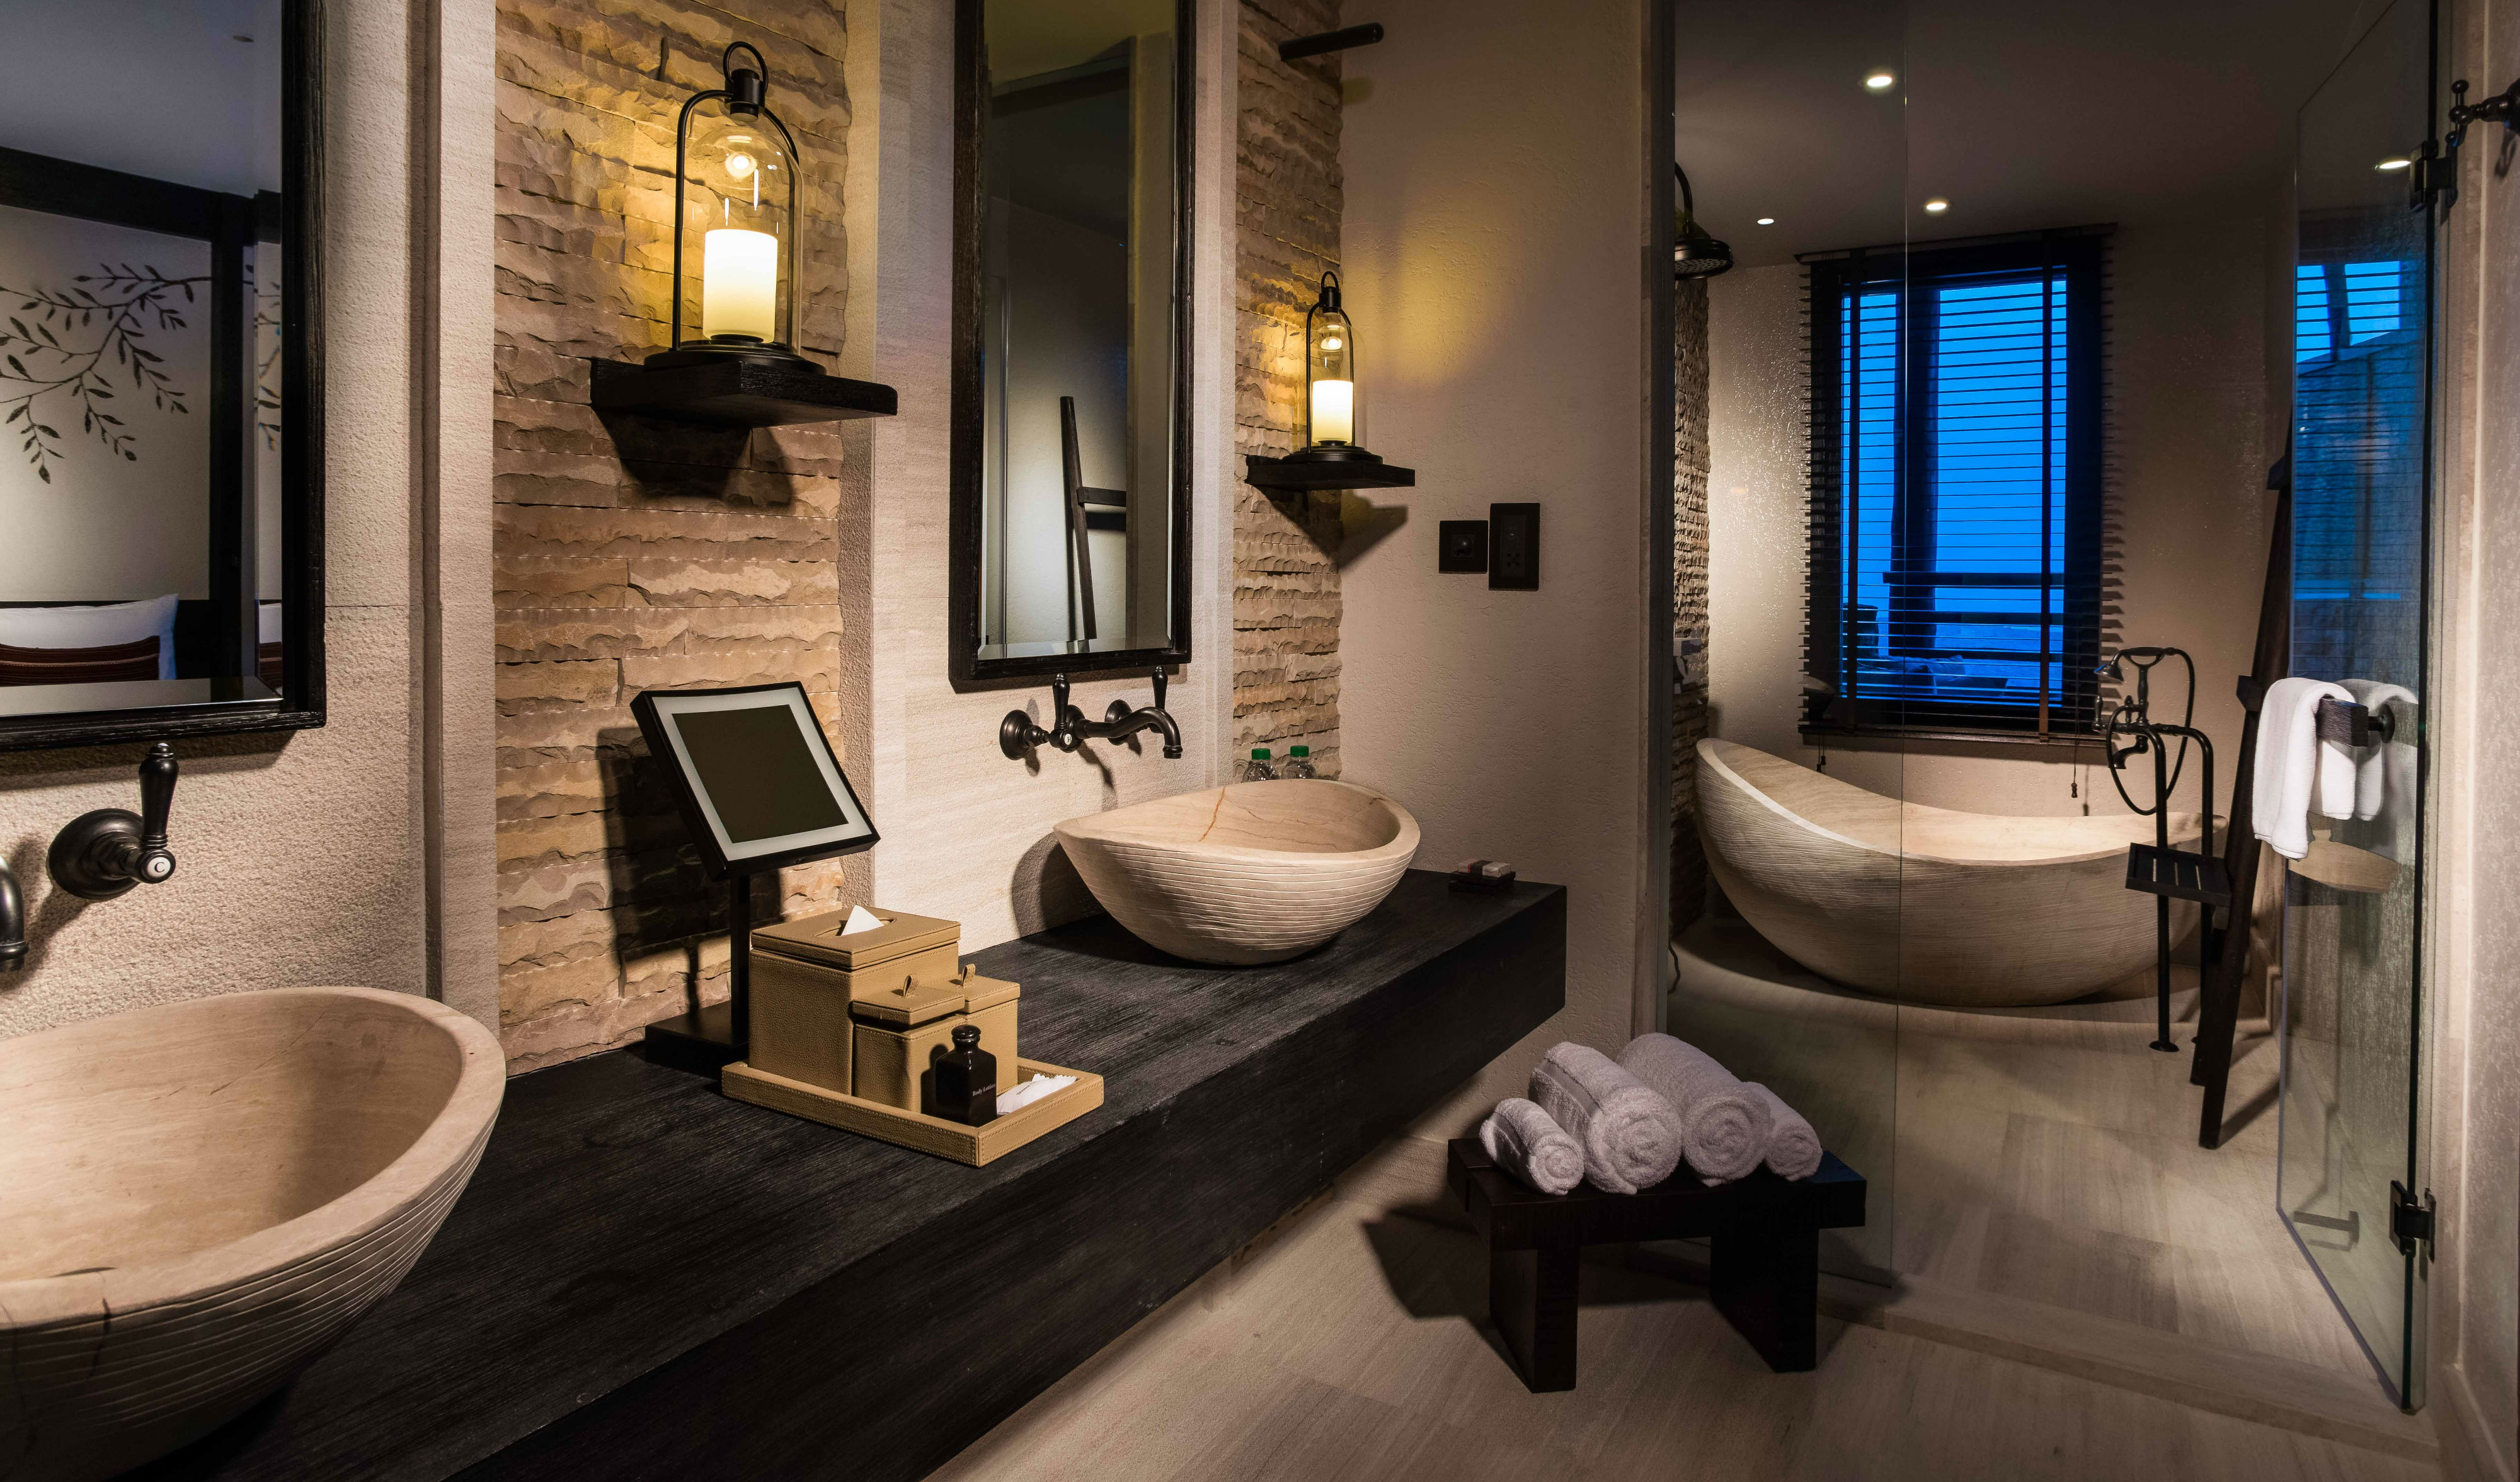 Alila bathroom